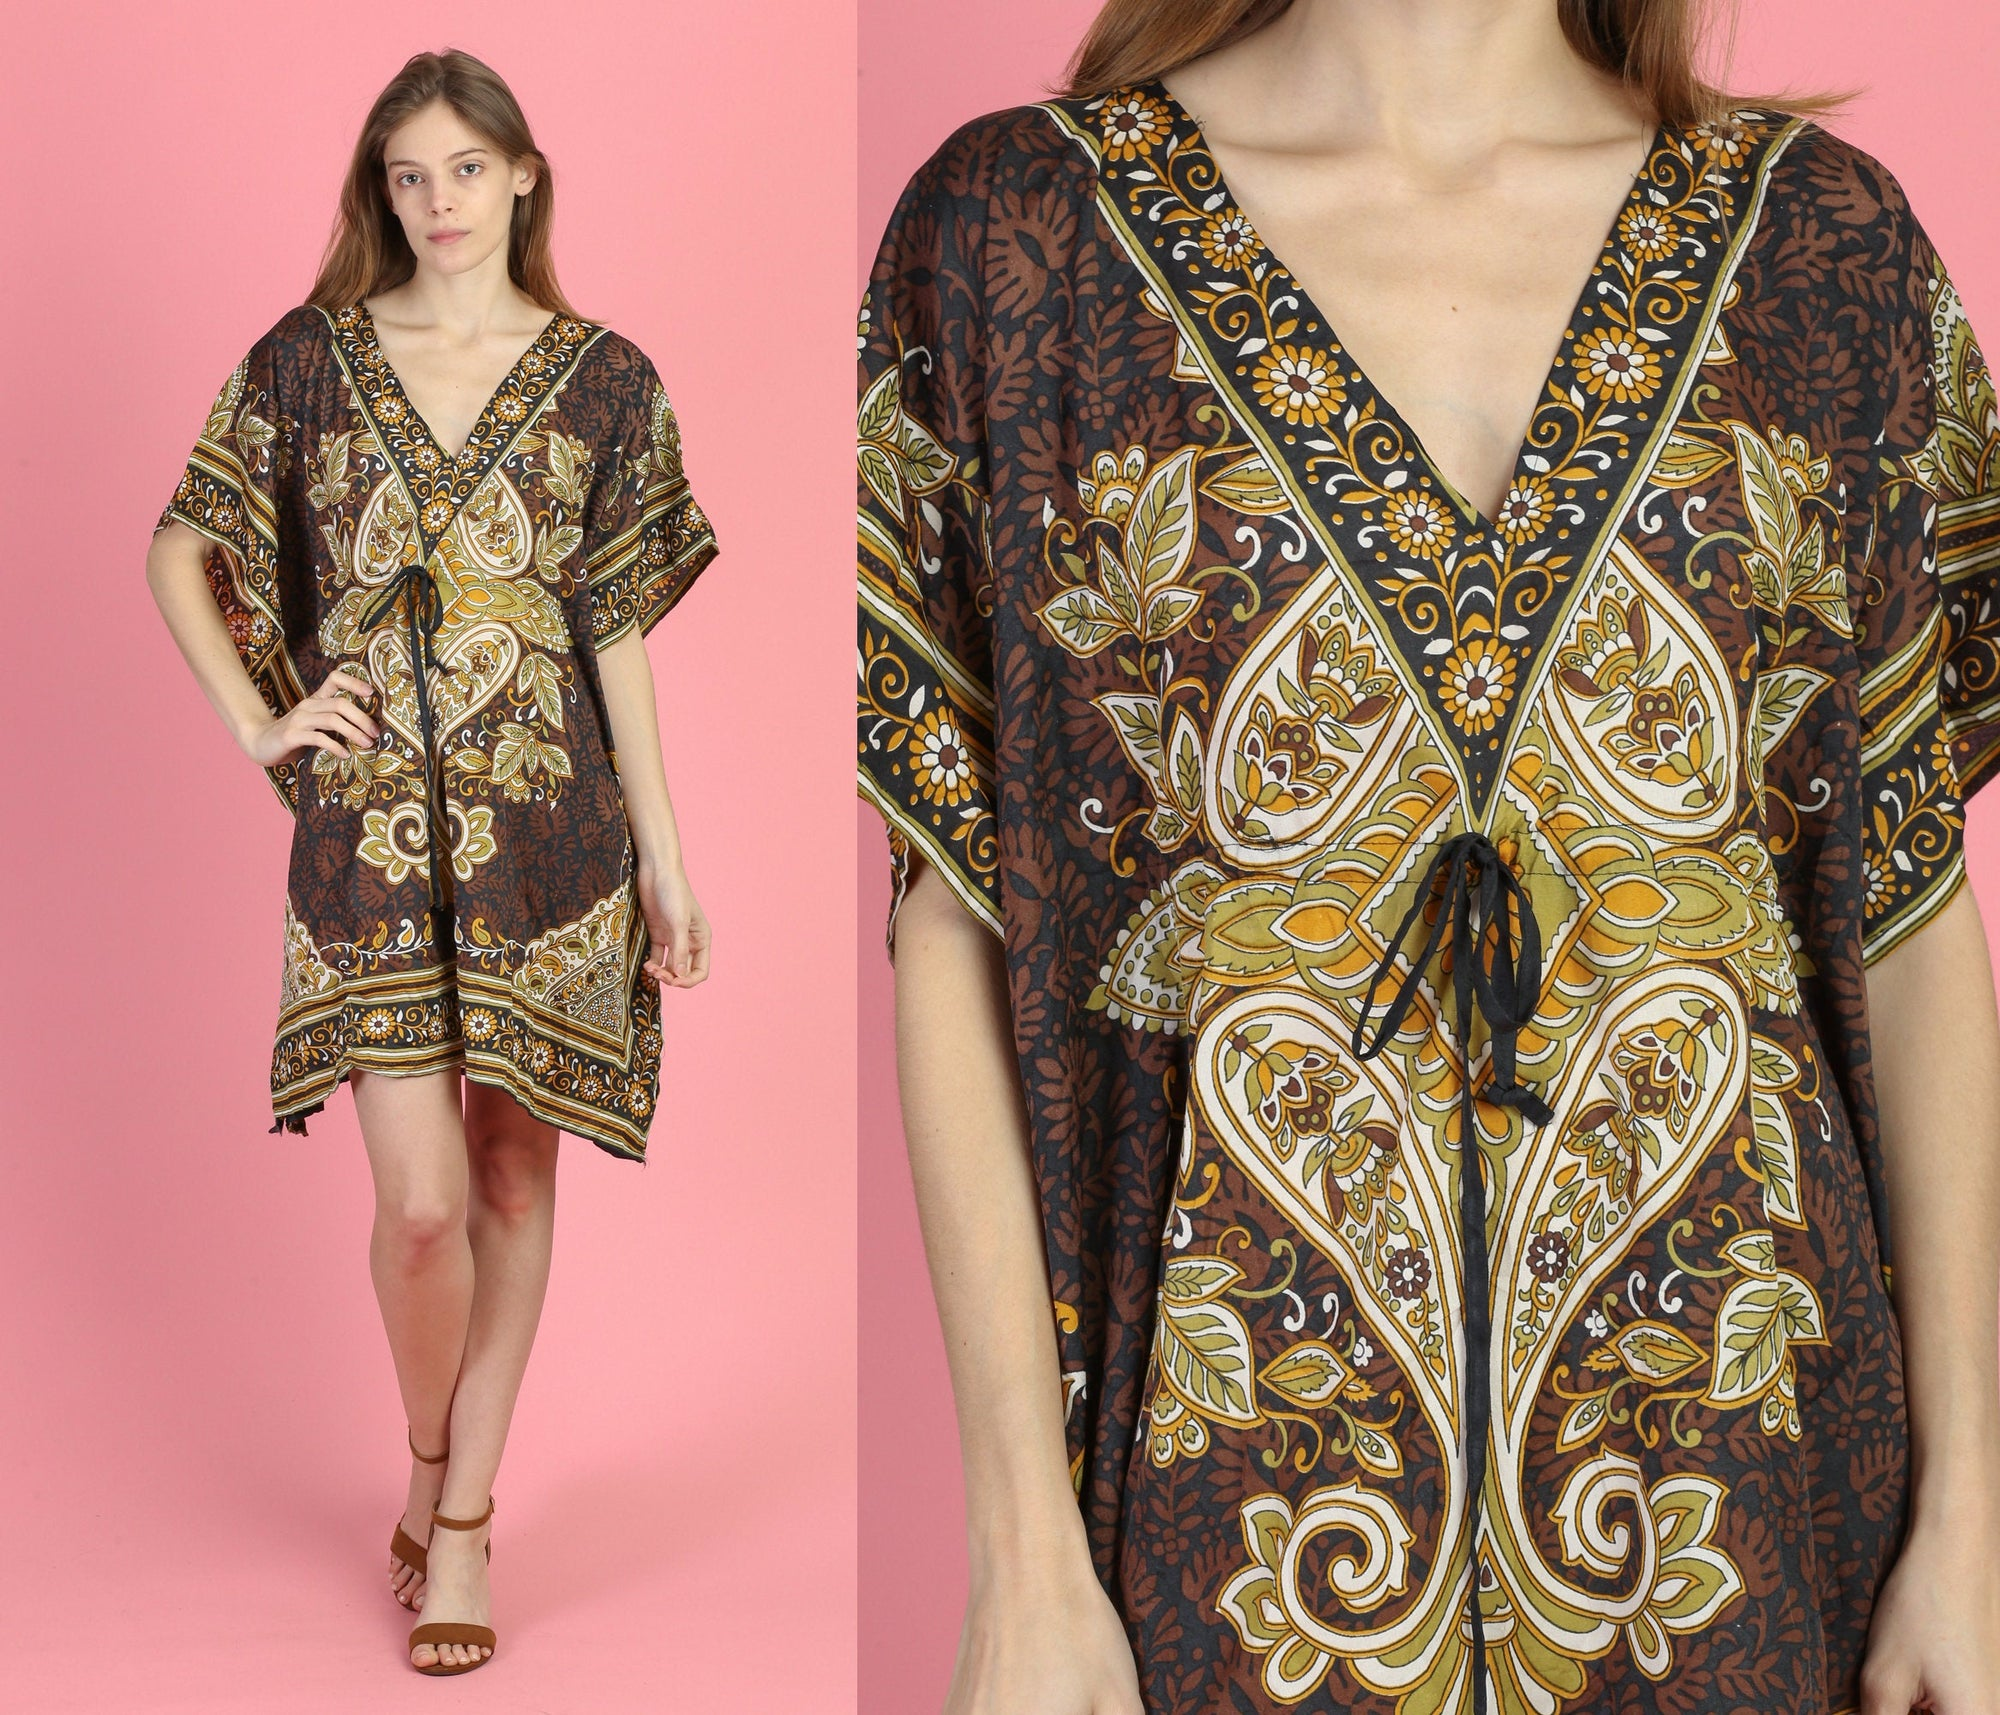 Vintage Boho Mini Kaftan Dress - One Size